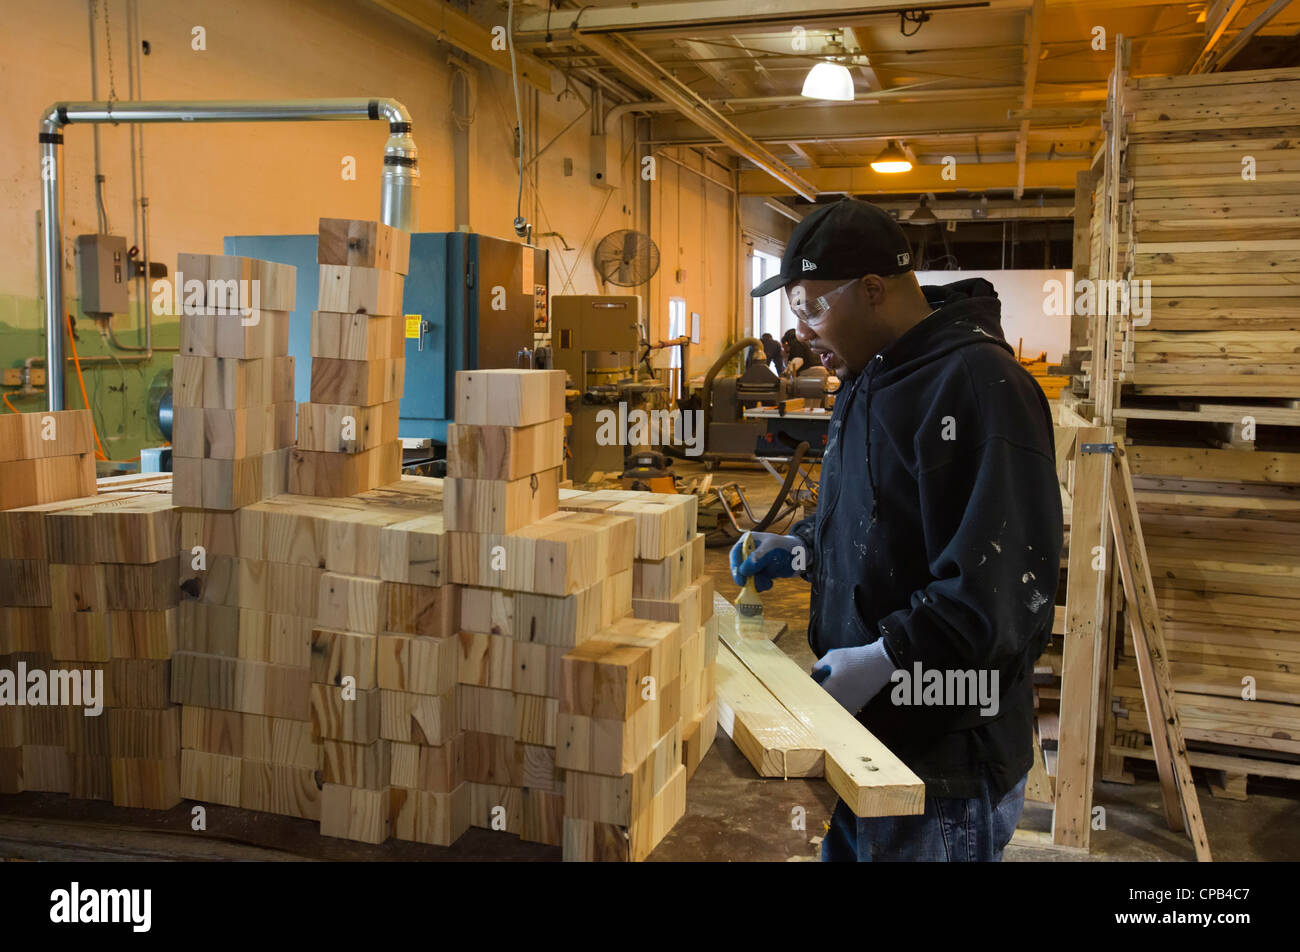 Workers Recycle Building Materials Salvaged From